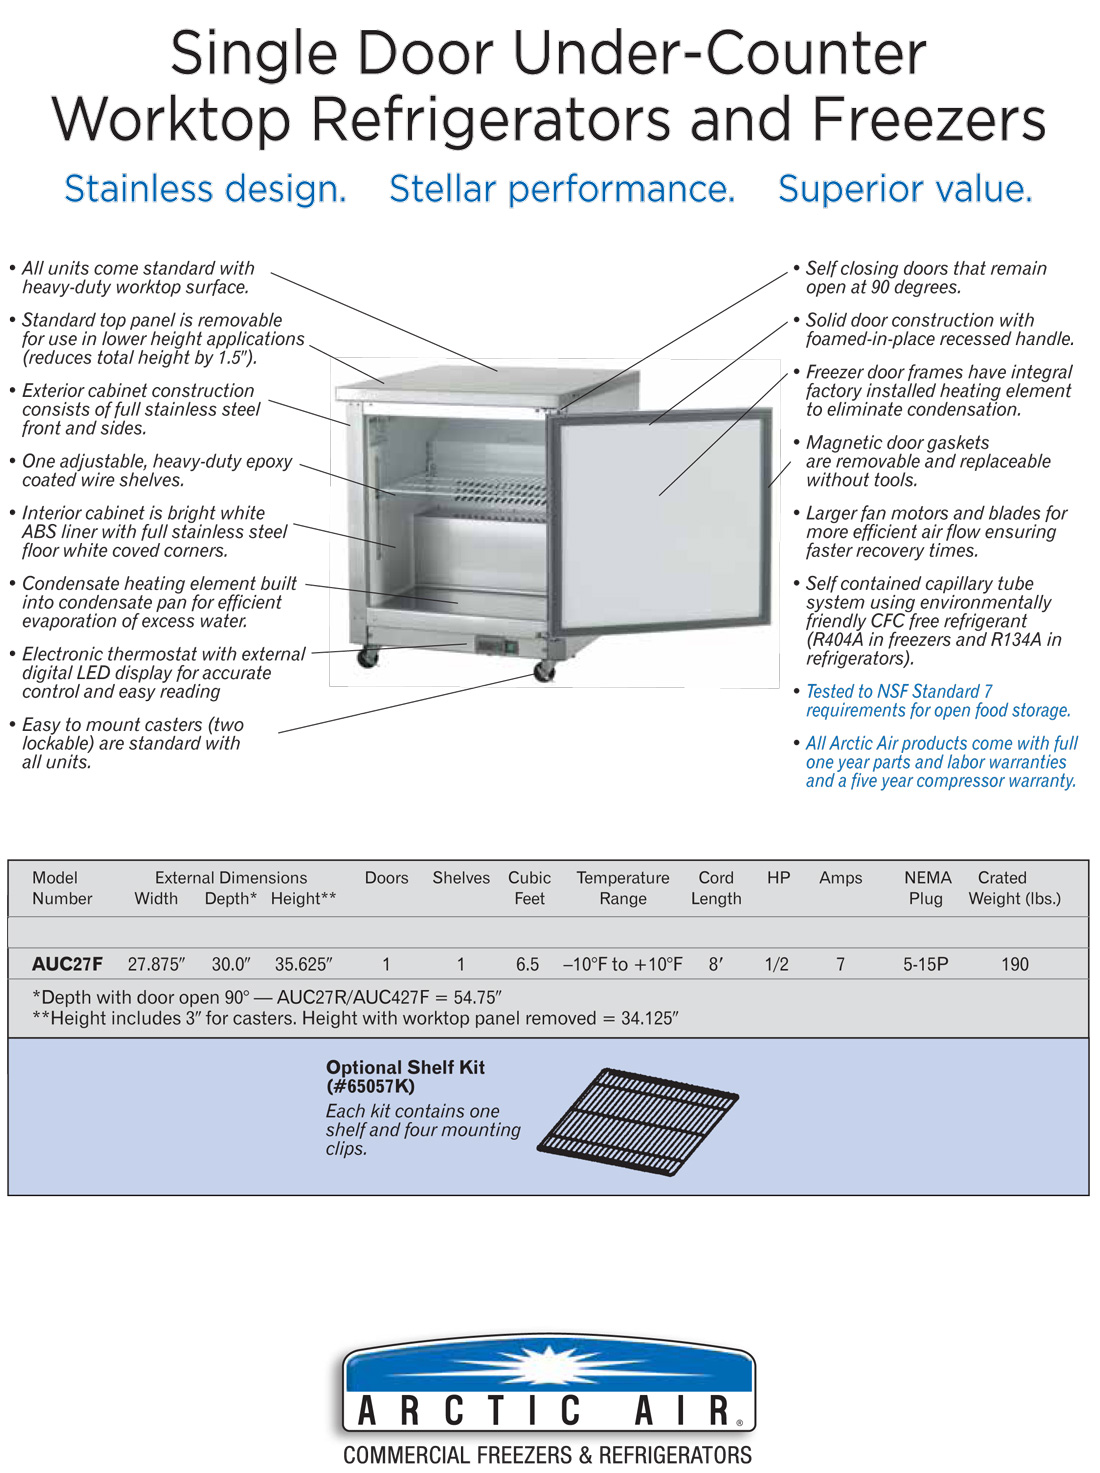 Arctic Air AUC27F Undercounter Freezer Specifications Diagram